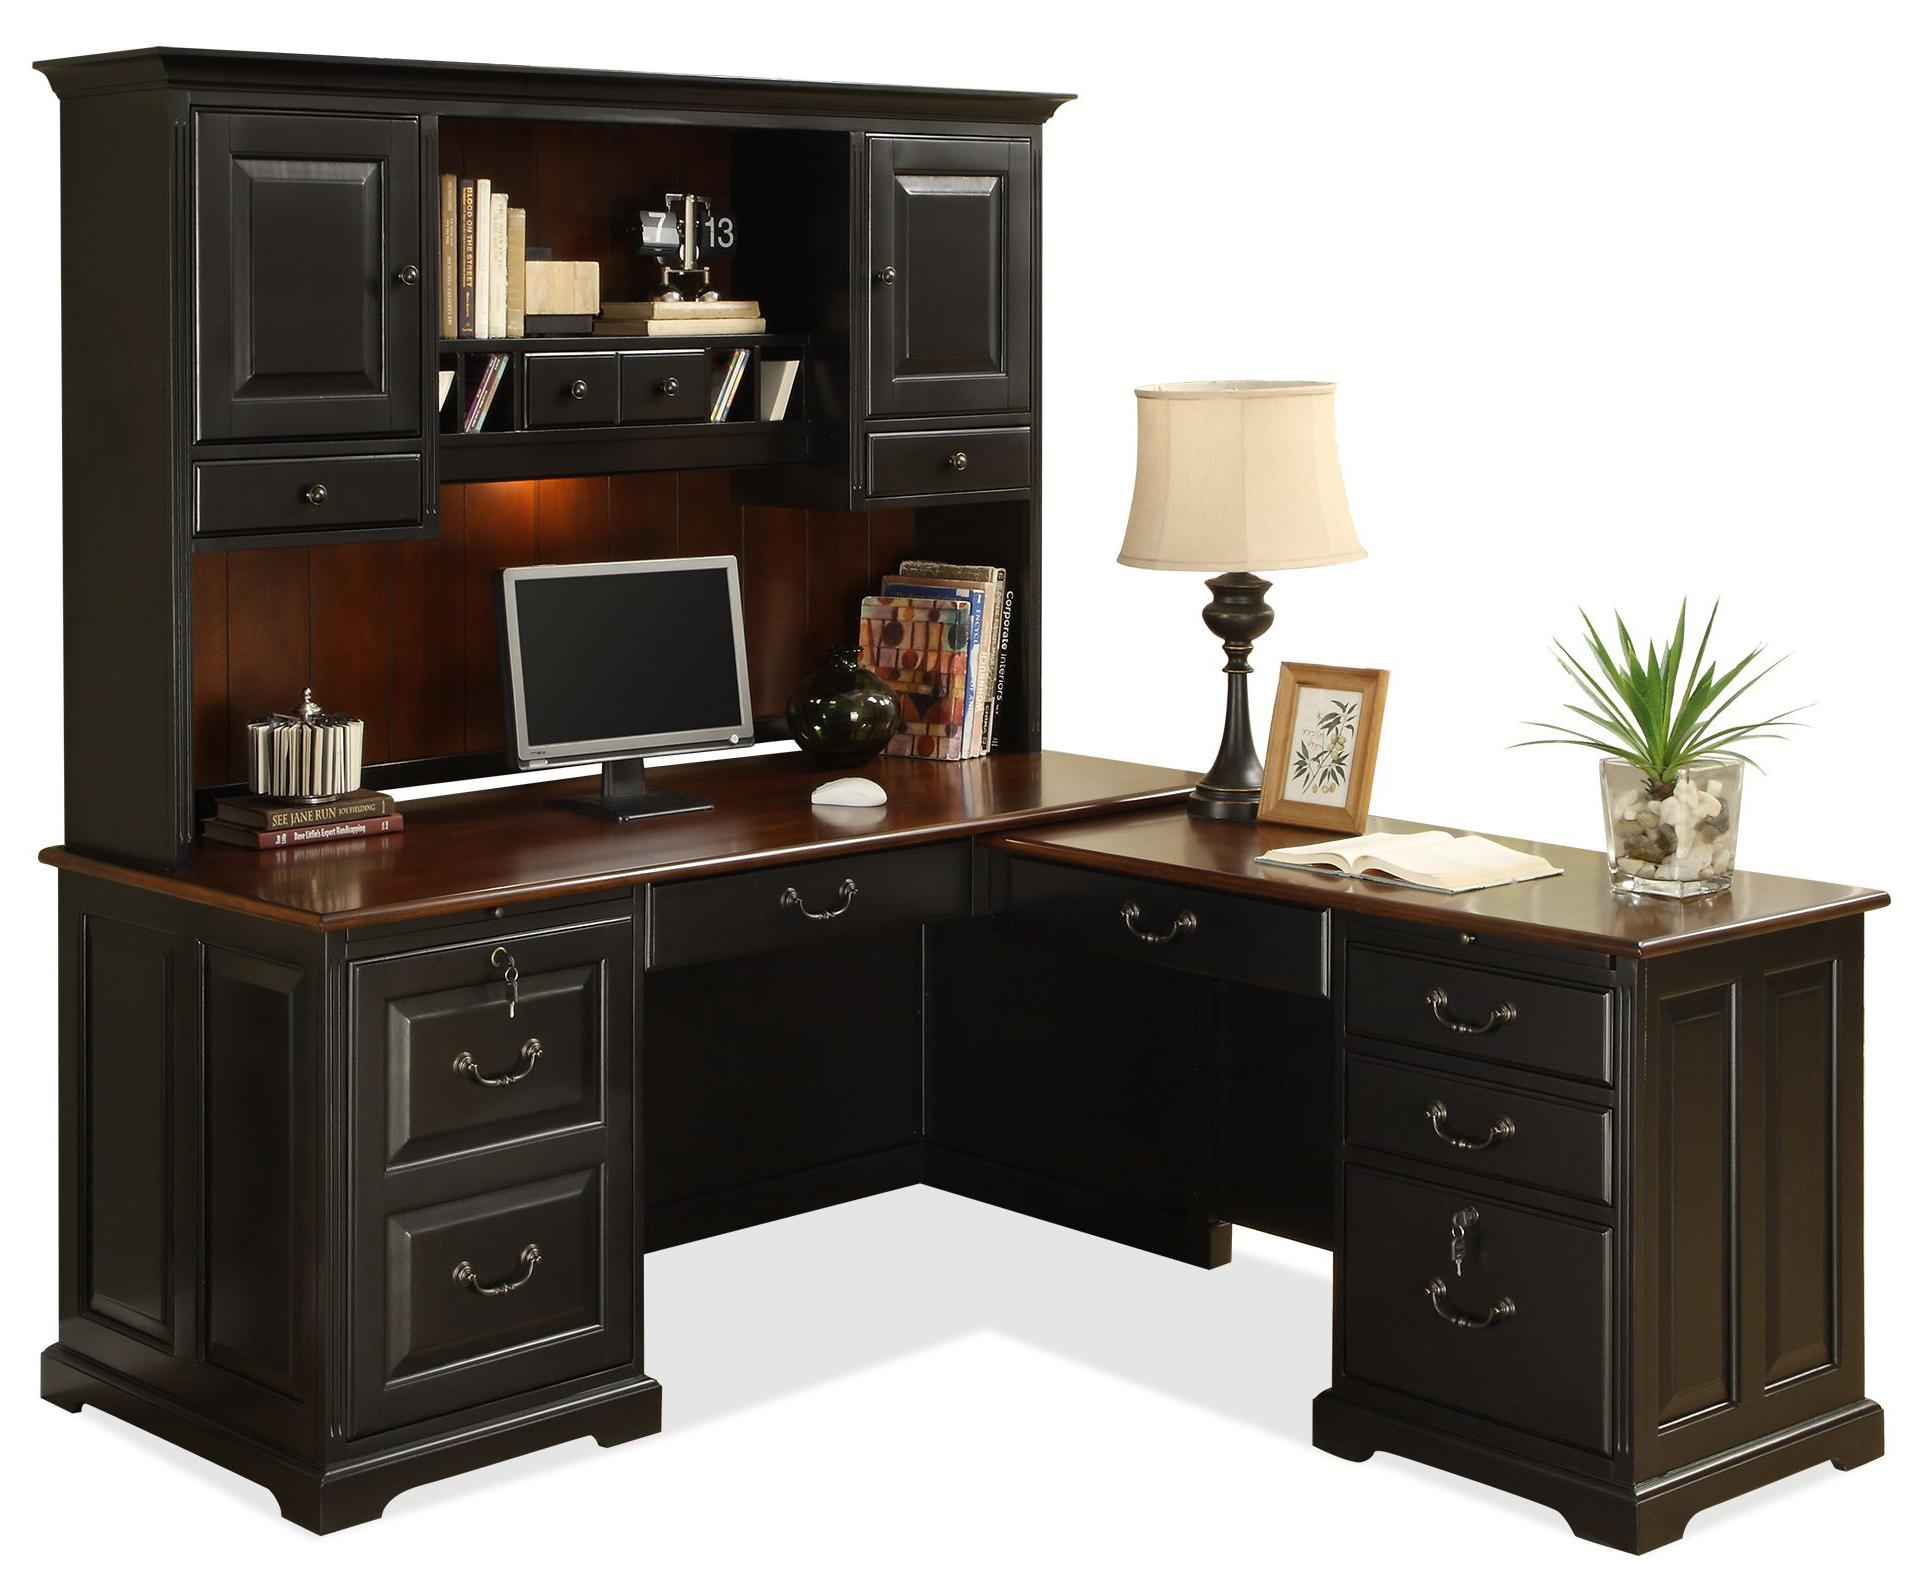 black l shaped desk with hutch plus storage plus computer set plus table standing lamp for home office furniture ideas